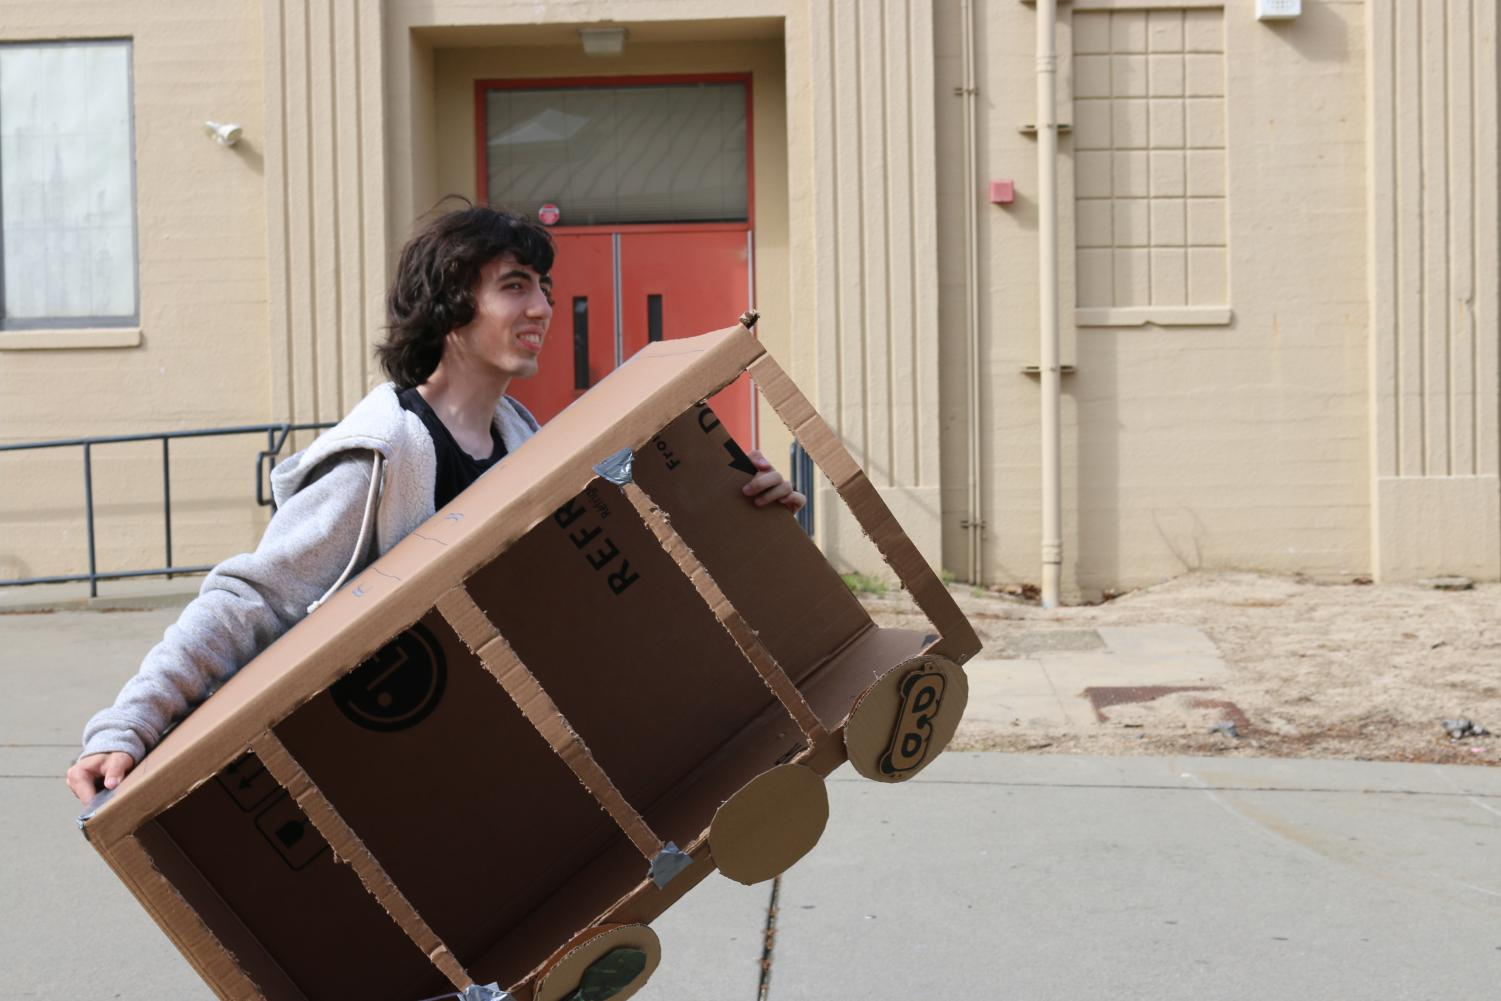 Junior Ike Bischof carries in a cardboard box to use in his self-written musical.